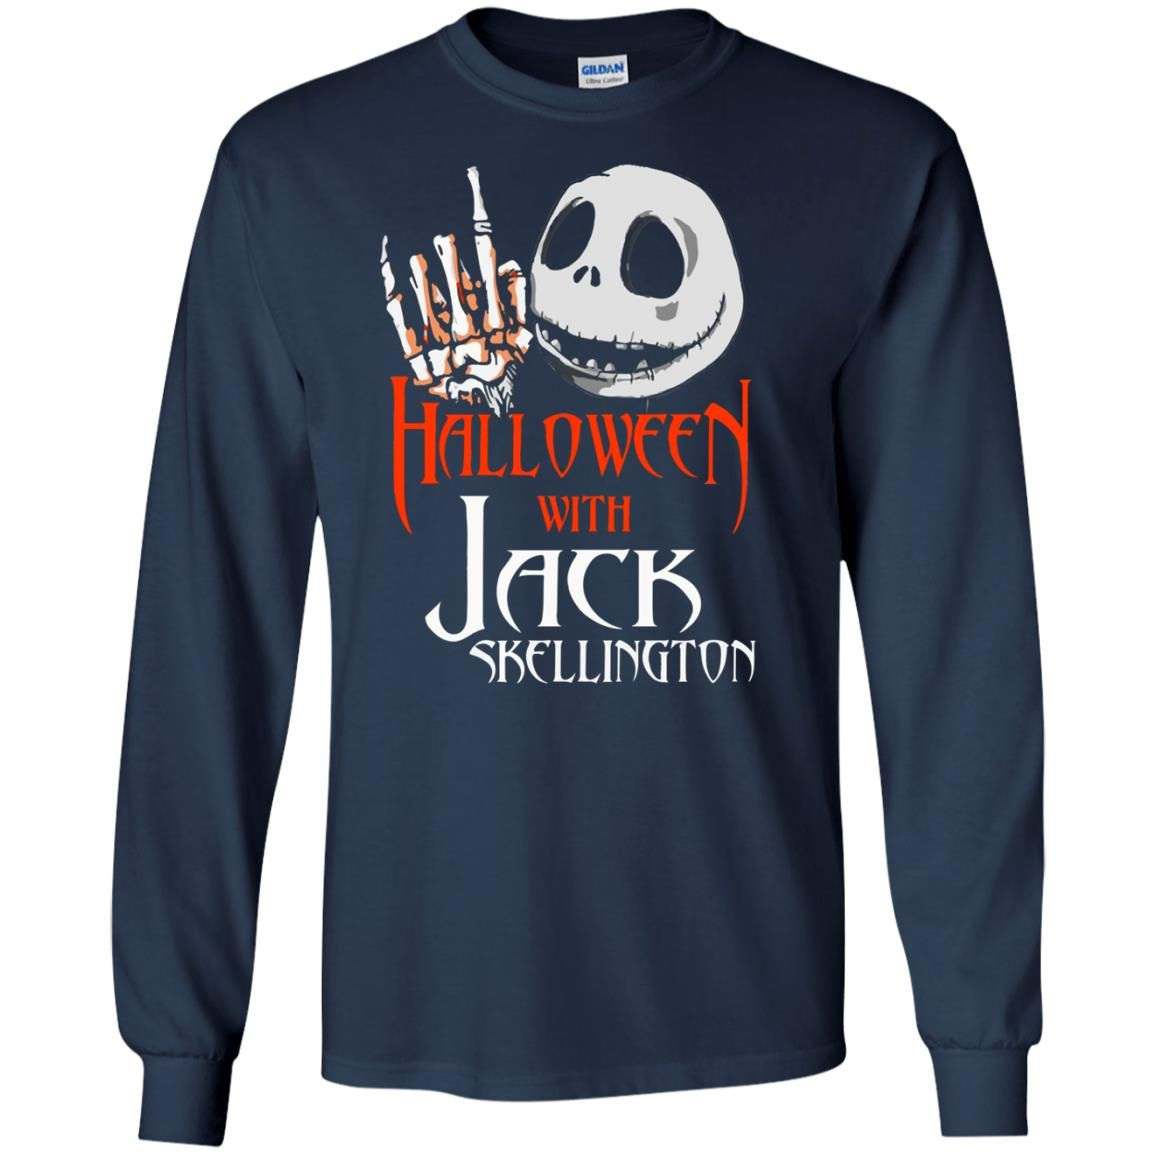 image 1379 - Halloween with Jack Skellington shirt, tank top, sweater